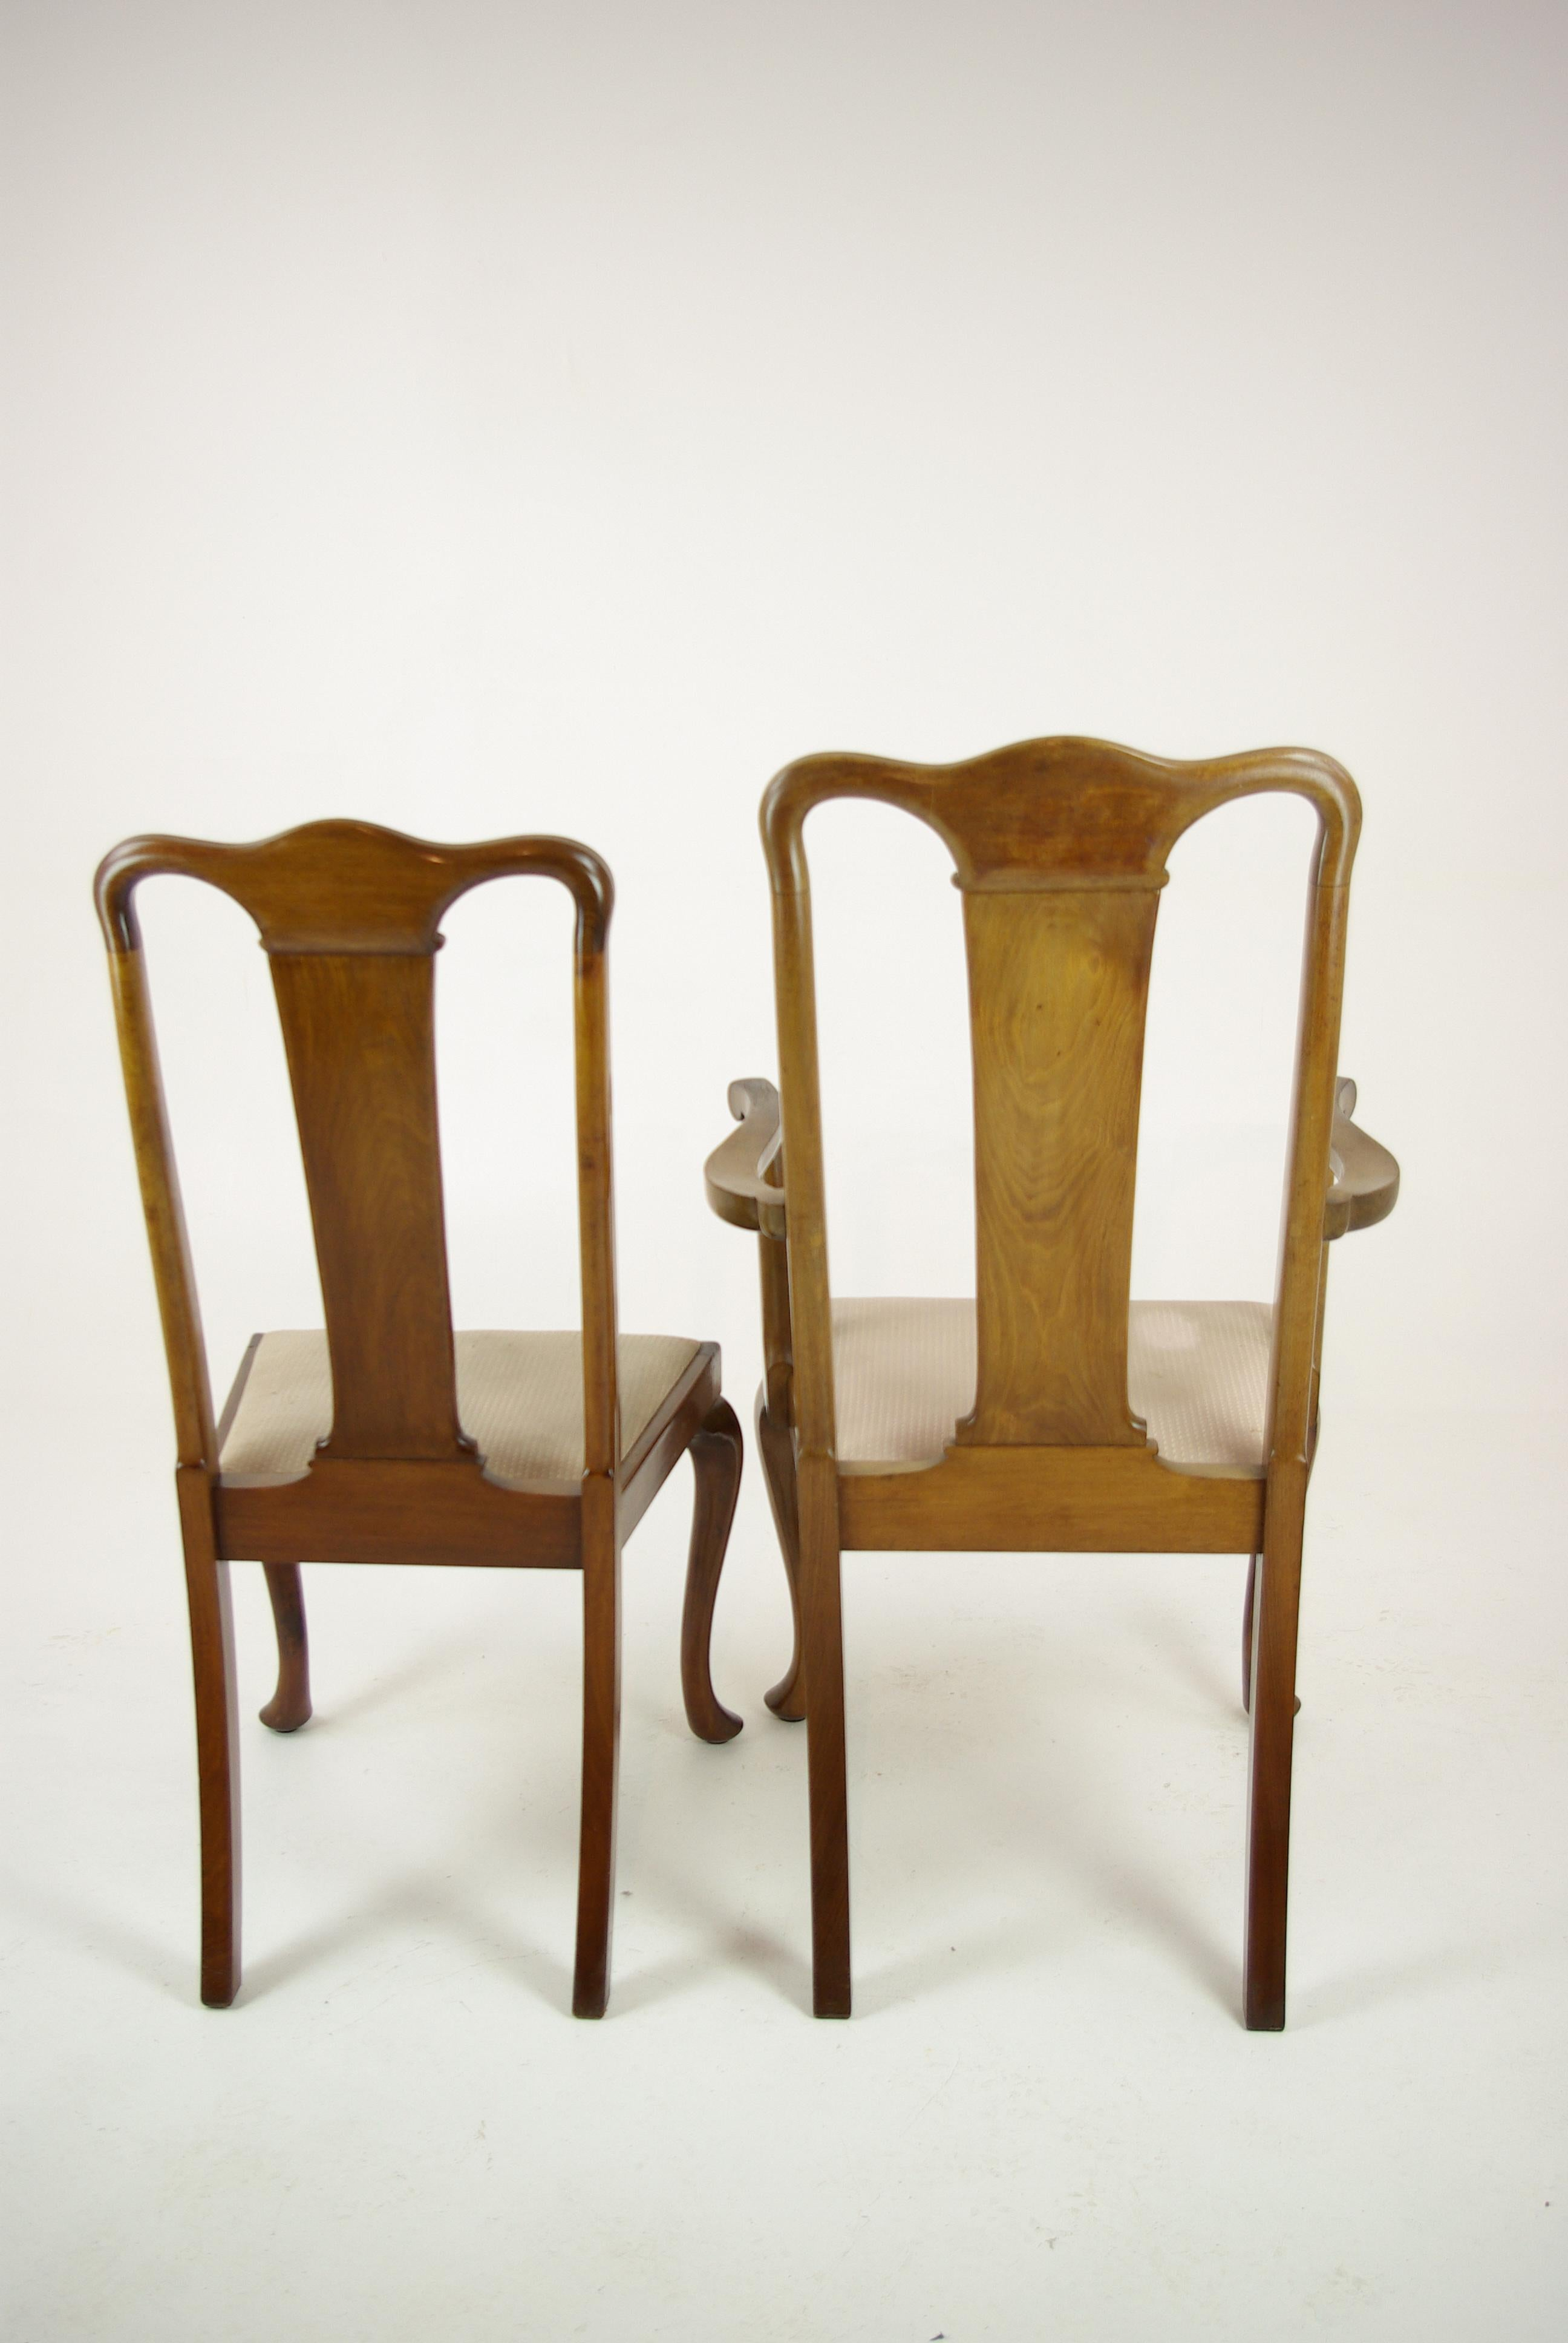 Antique Mahogany Chairs, Queen Anne Chairs, Mahogany Dining Chairs, B1196  For Sale 2